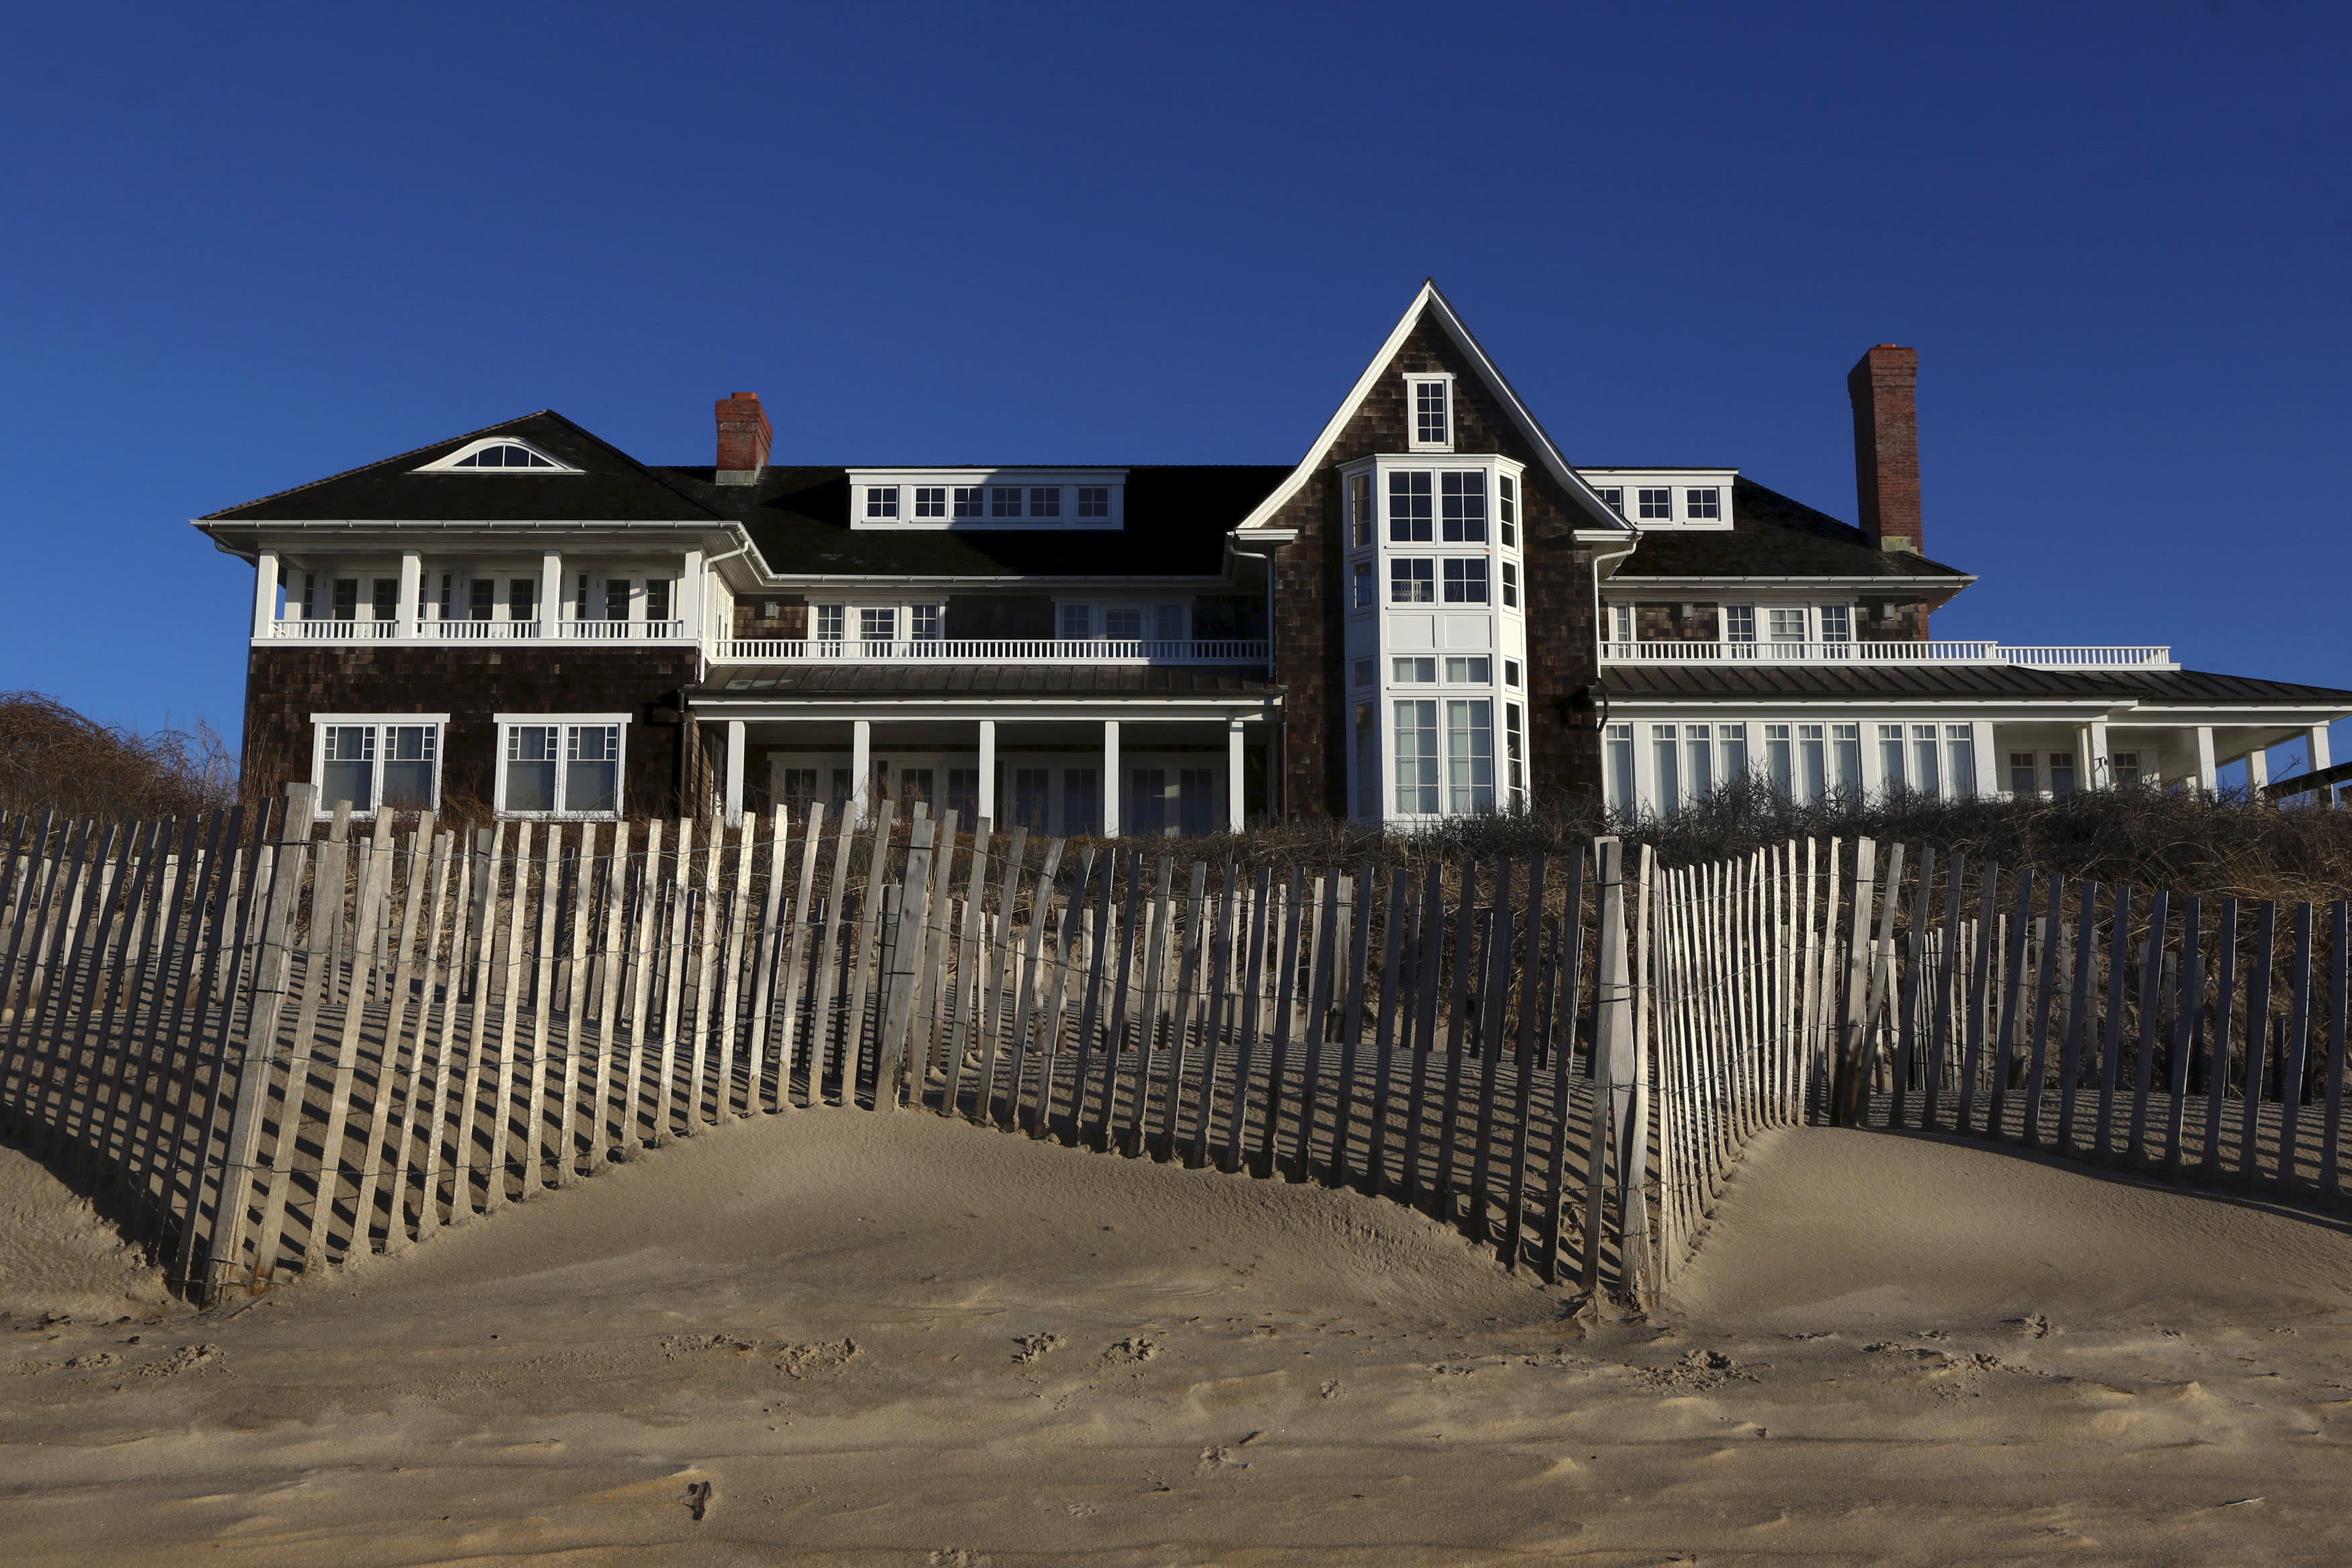 A house just rented in the Hamptons for $2 million for the summer - CNBC